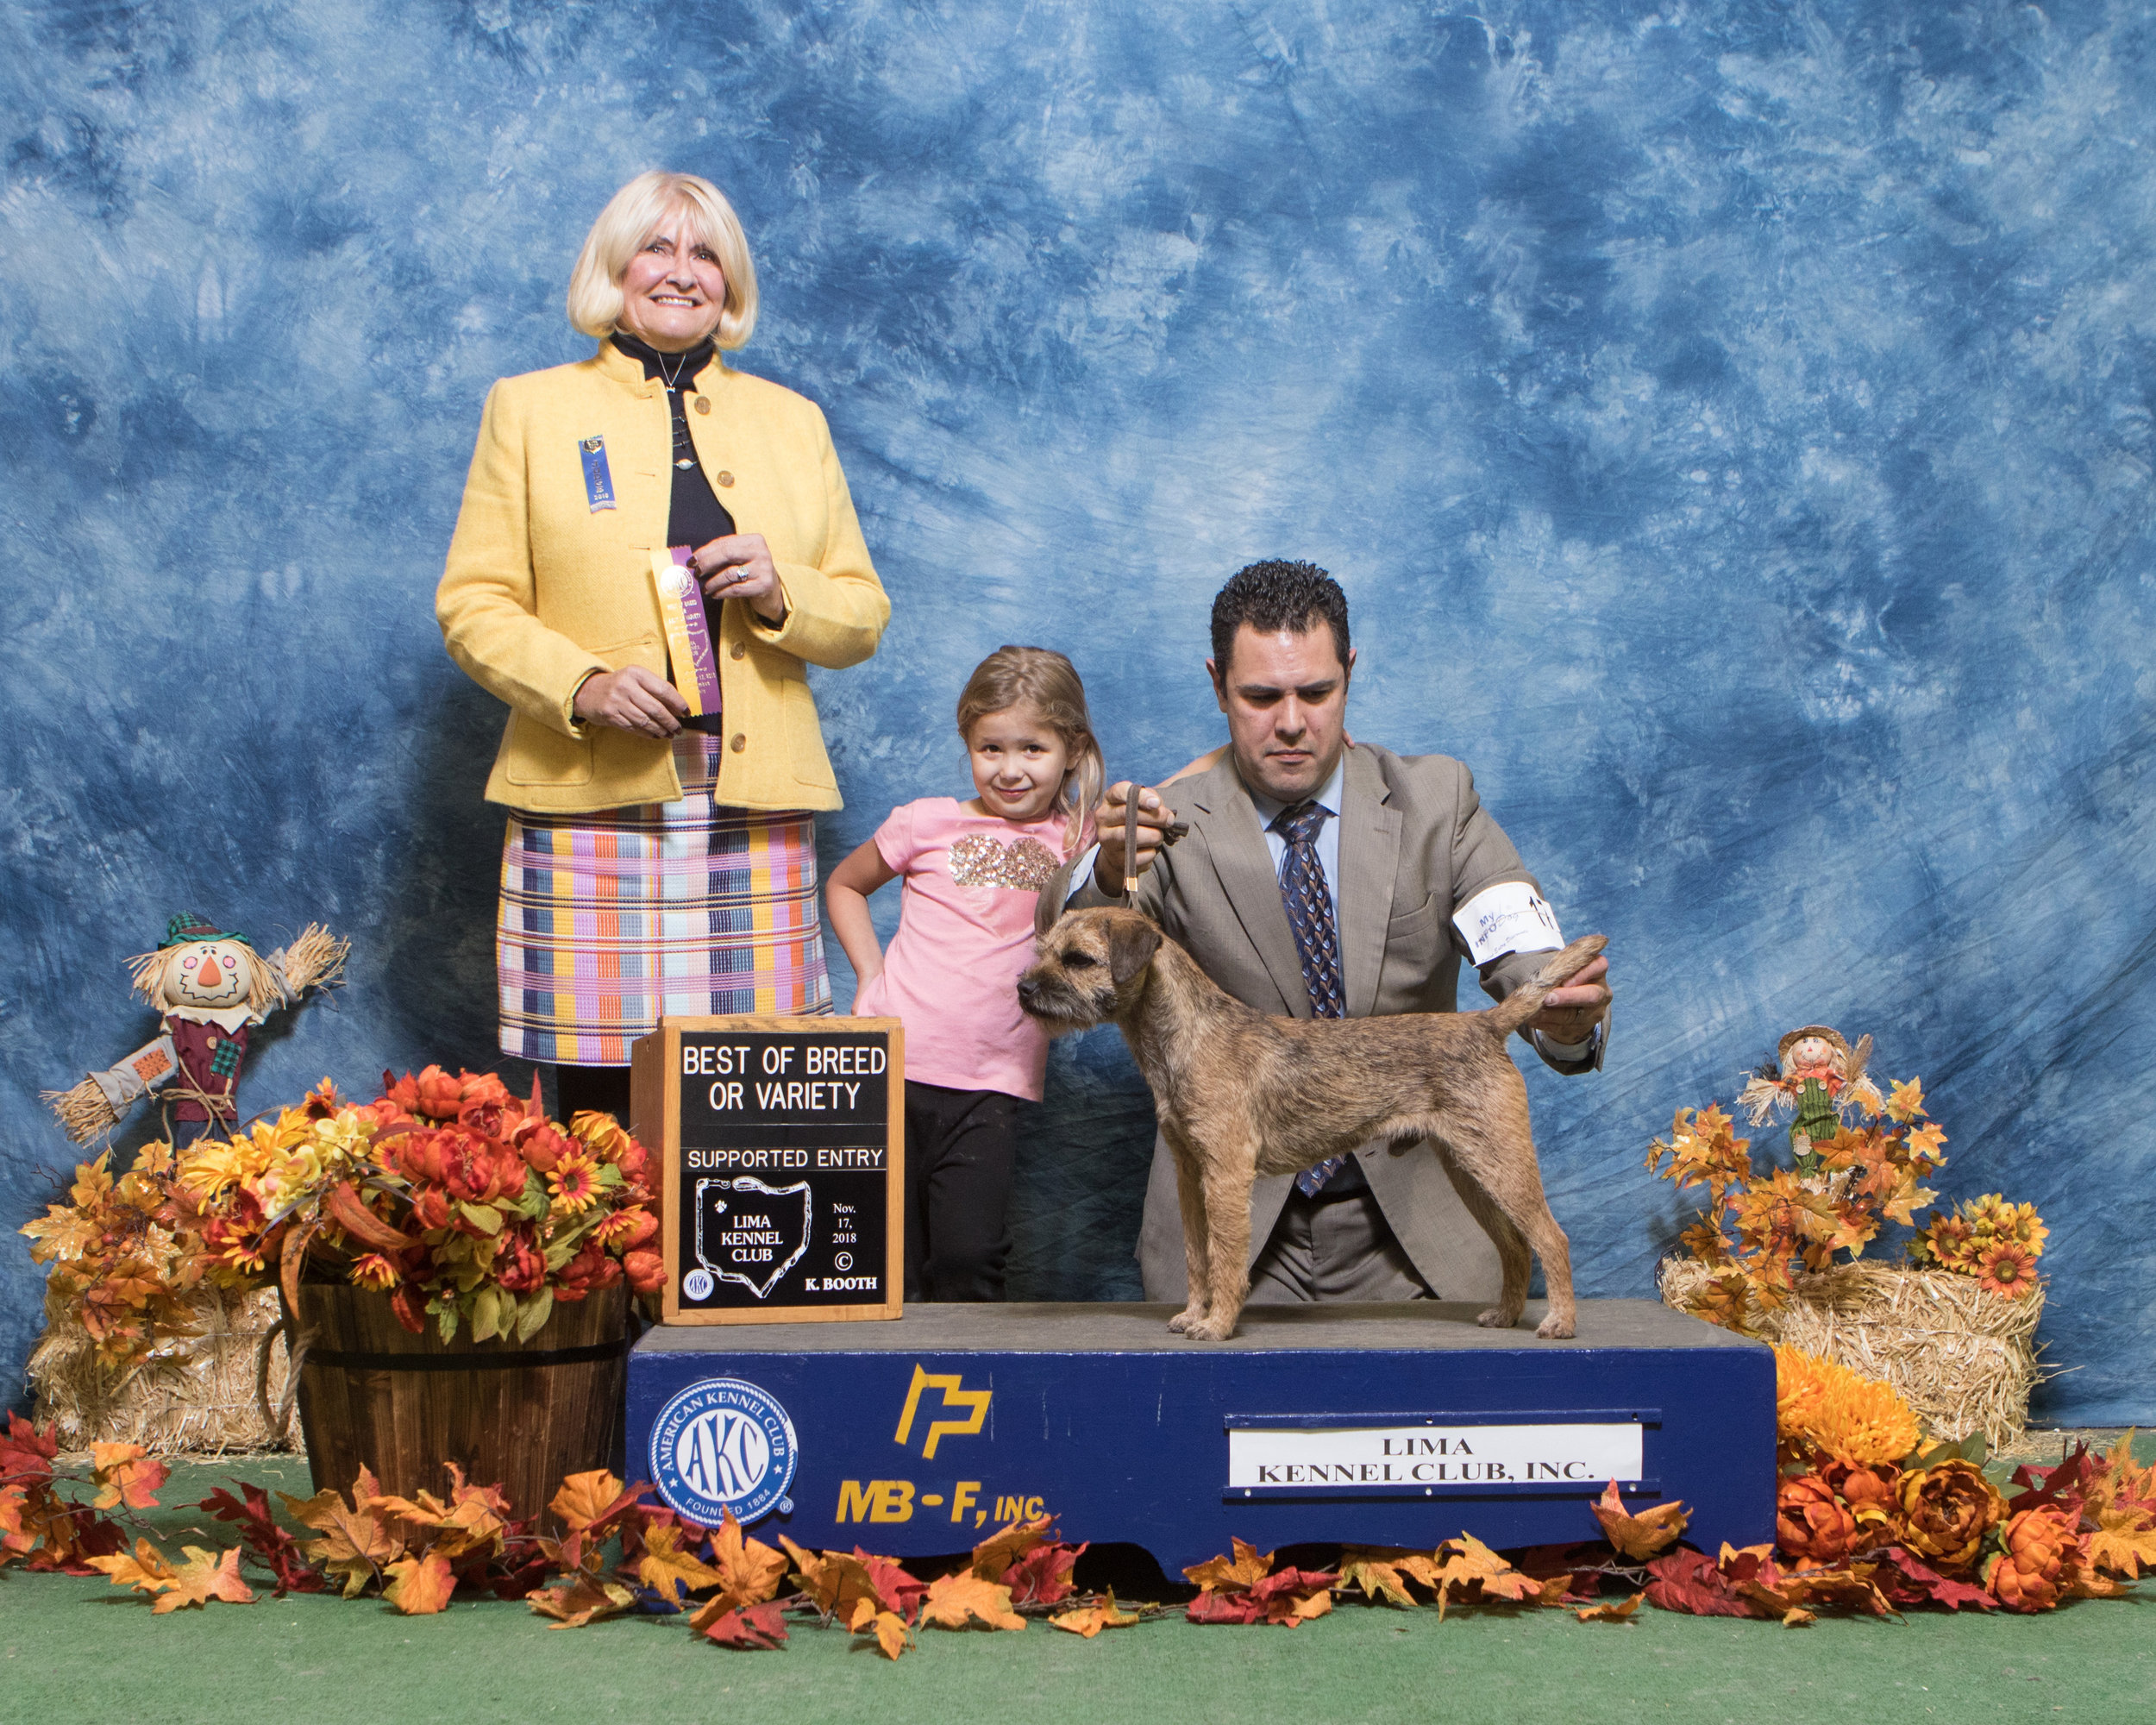 It's Official – Jackson Goes Silver Grand!  Our good boy Jackson (GCHS CH Loch Cu's Jackson at BriarKeep) earned his Silver Grand Championship at the Mid-Ohio cluster with 3 5-point majors including a BOB, BOS, and Select among competitive border terrier supported entries. He is such a solid competitor. We appreciate Leonardo Garcini's (and his team's) beautiful preparation and presentation of our boy. 12/9/18